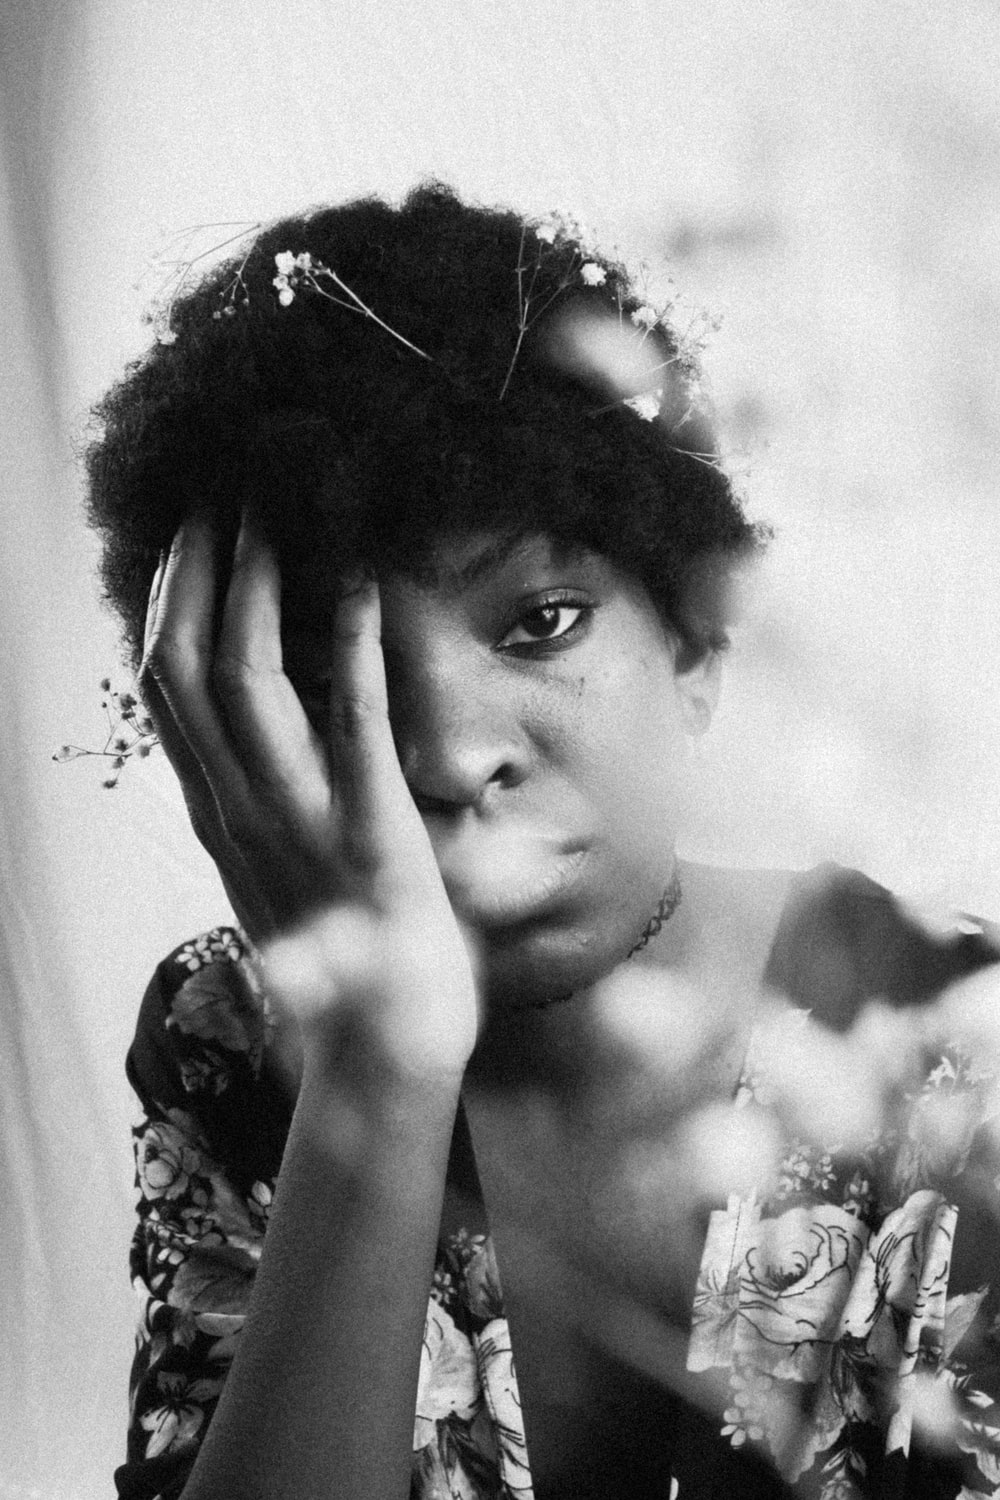 grayscale photo of woman with floral headdress